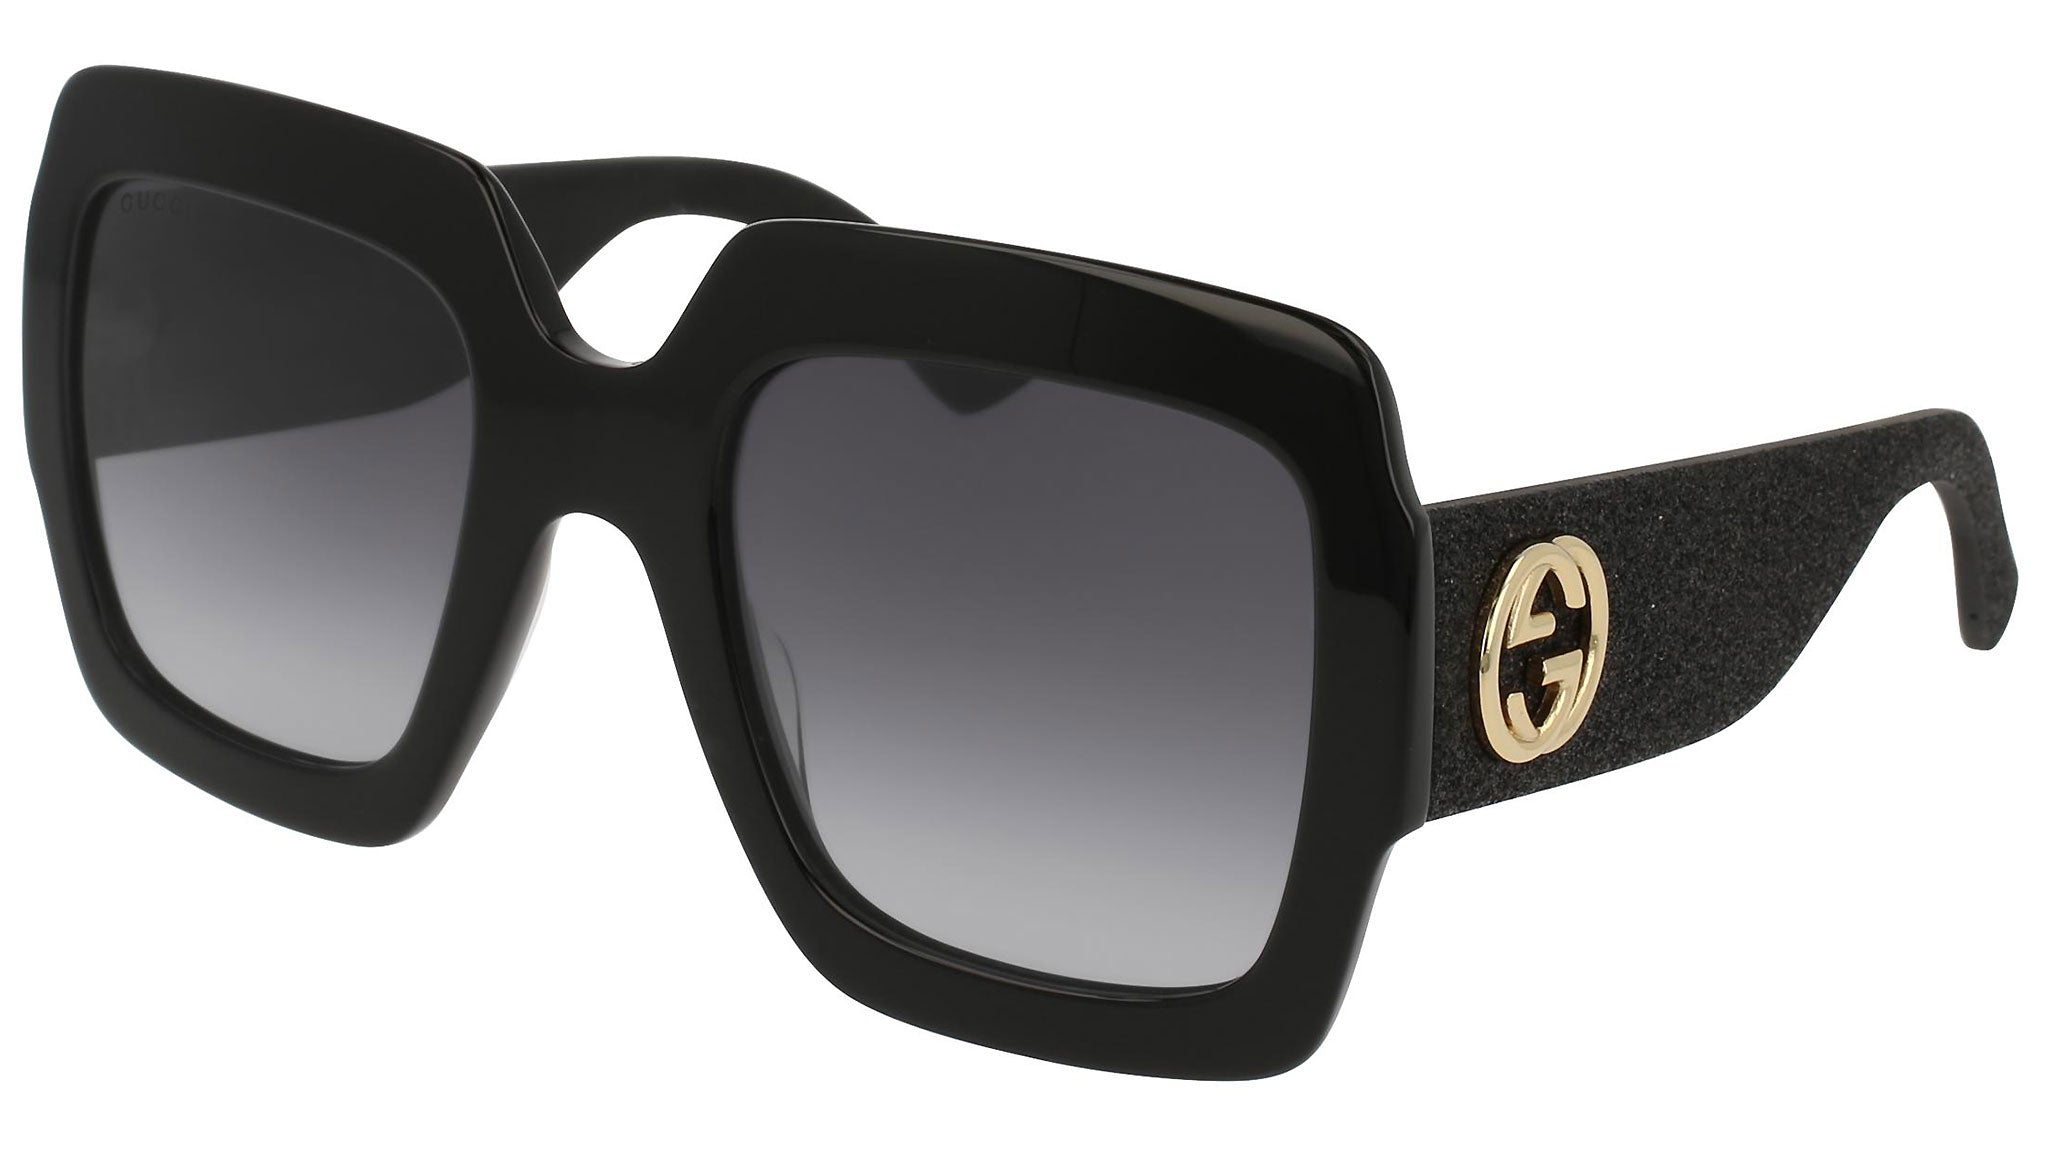 GG0102S shiny black and grey